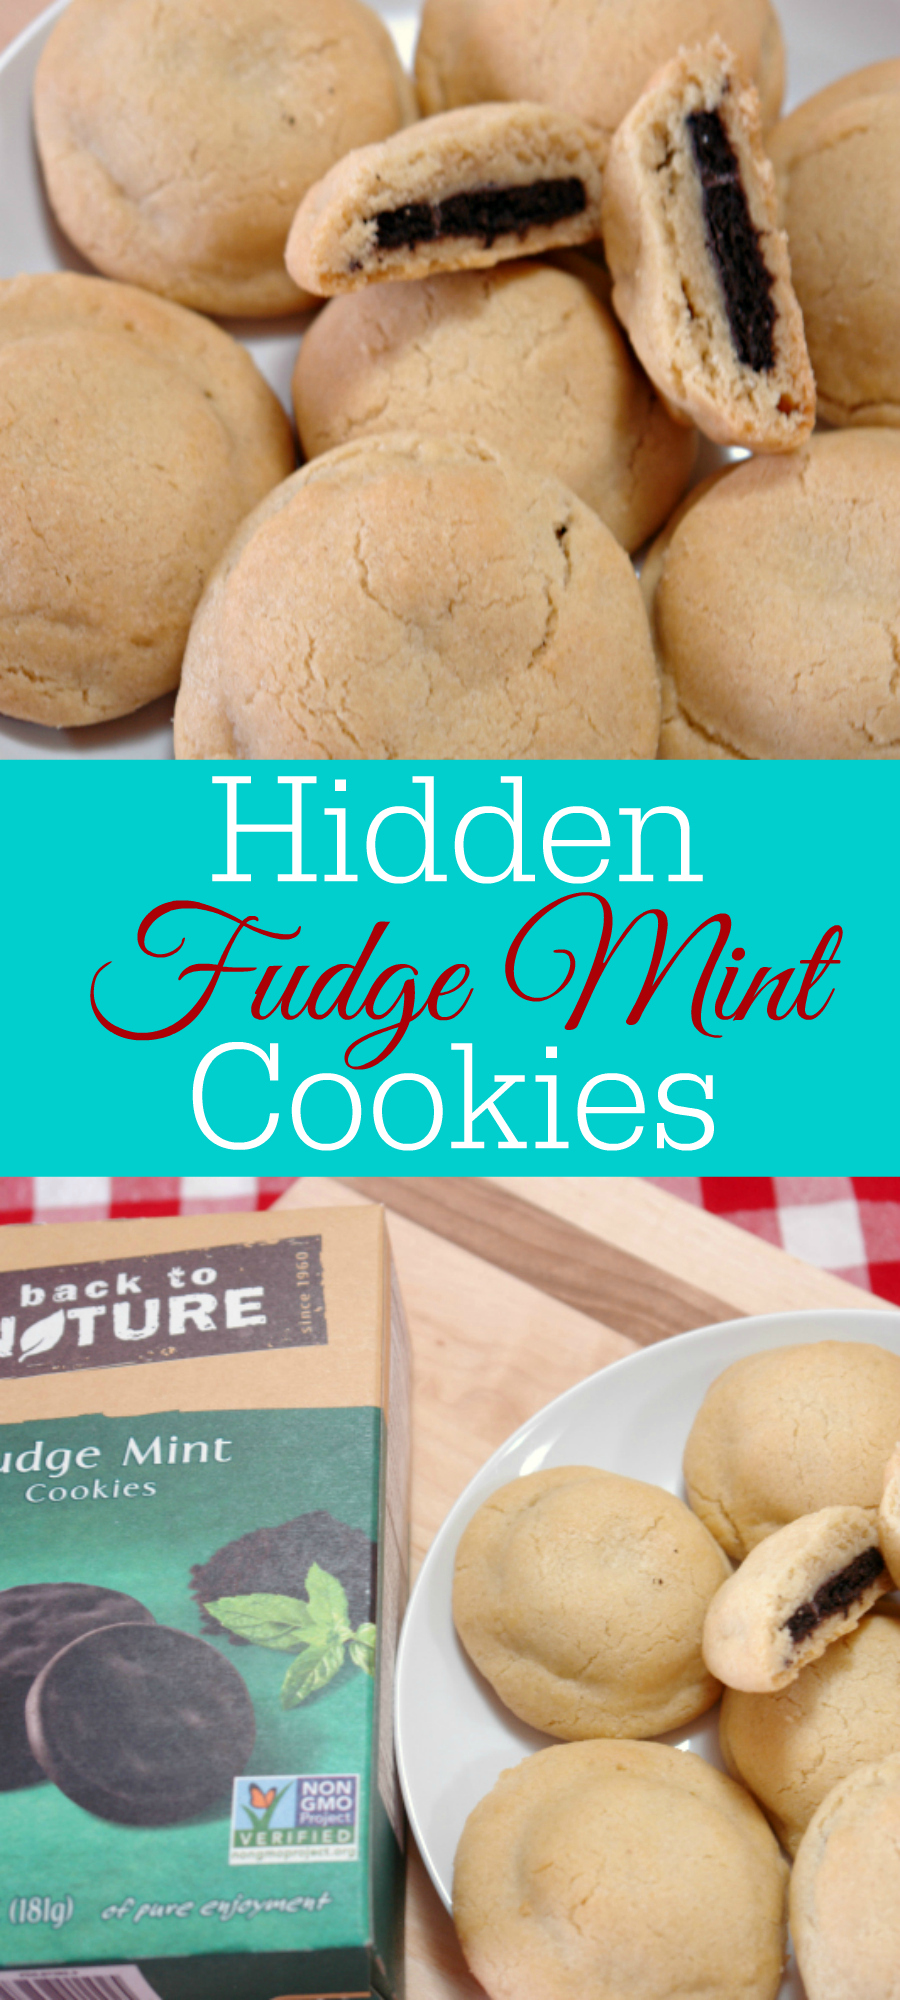 Sugar cookies are great but even better are these hidden mint cookies. A sugar cookie on the outside with a fudge mint cookie hidden inside.Featuring @Back to Nature Foods Fudge Mint Cookies. #sponsored @Mambo Sprouts